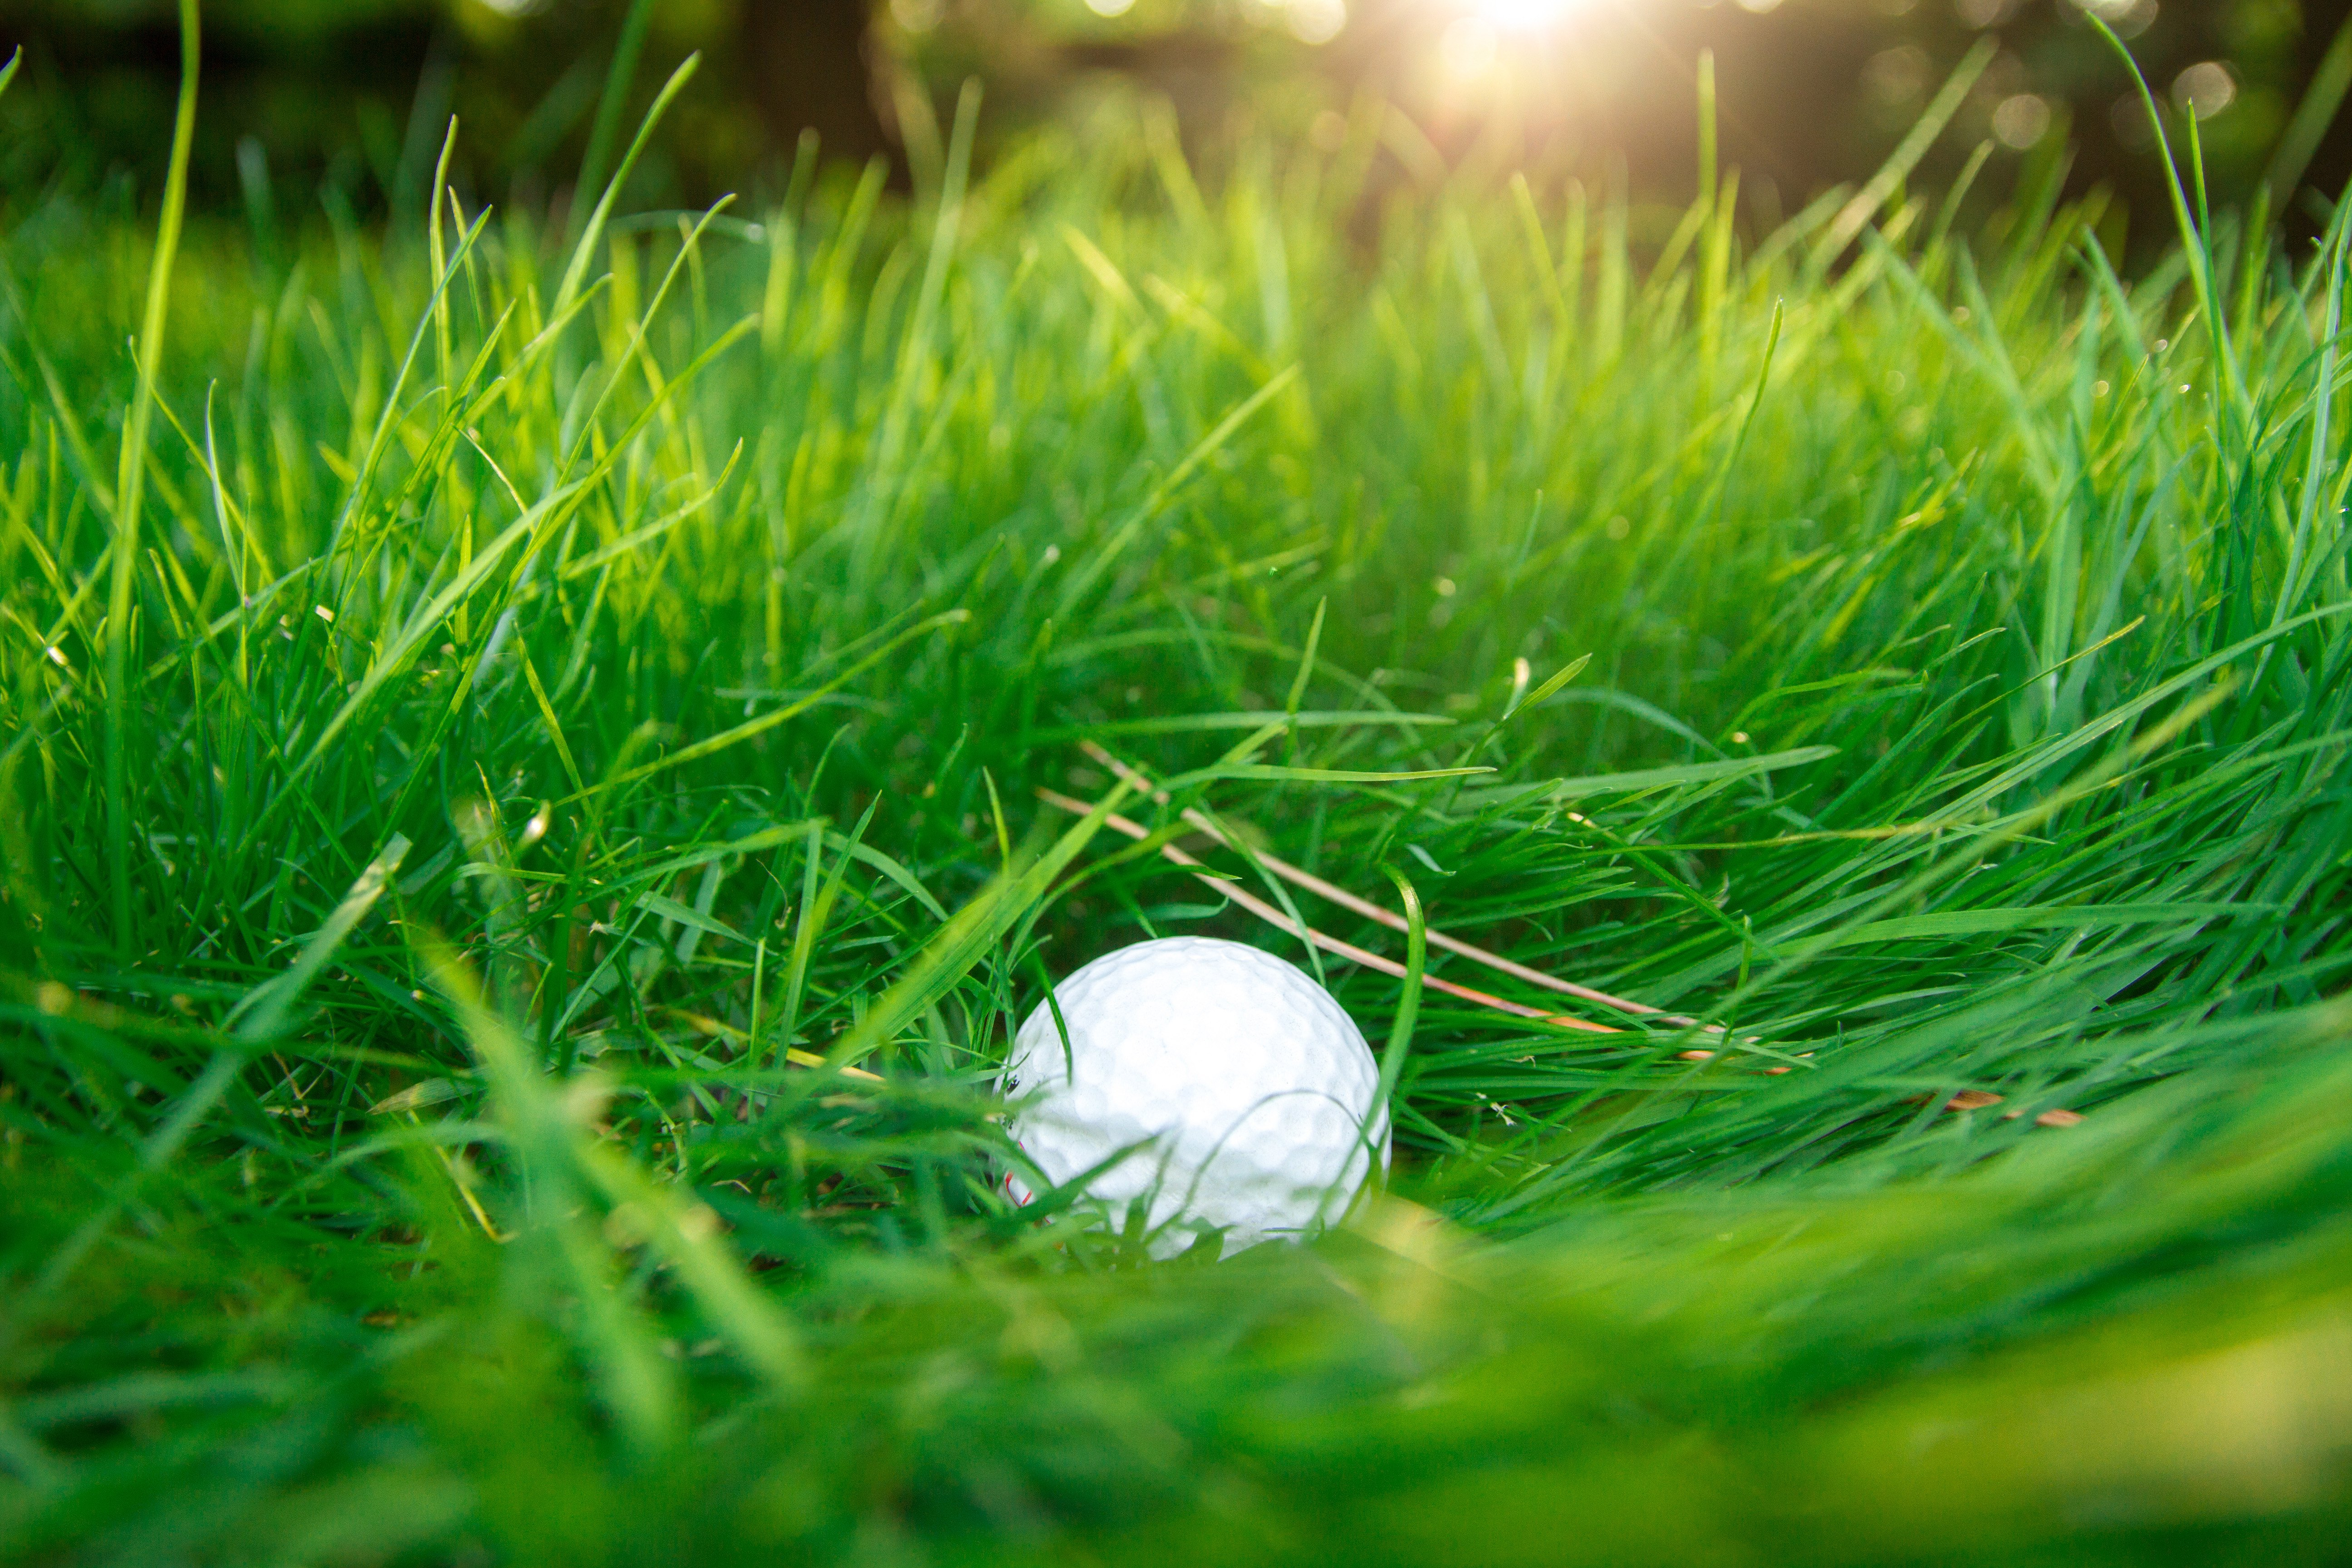 Golf ball in high grass, Activity, Leisure, Sports, Recreation, HQ Photo